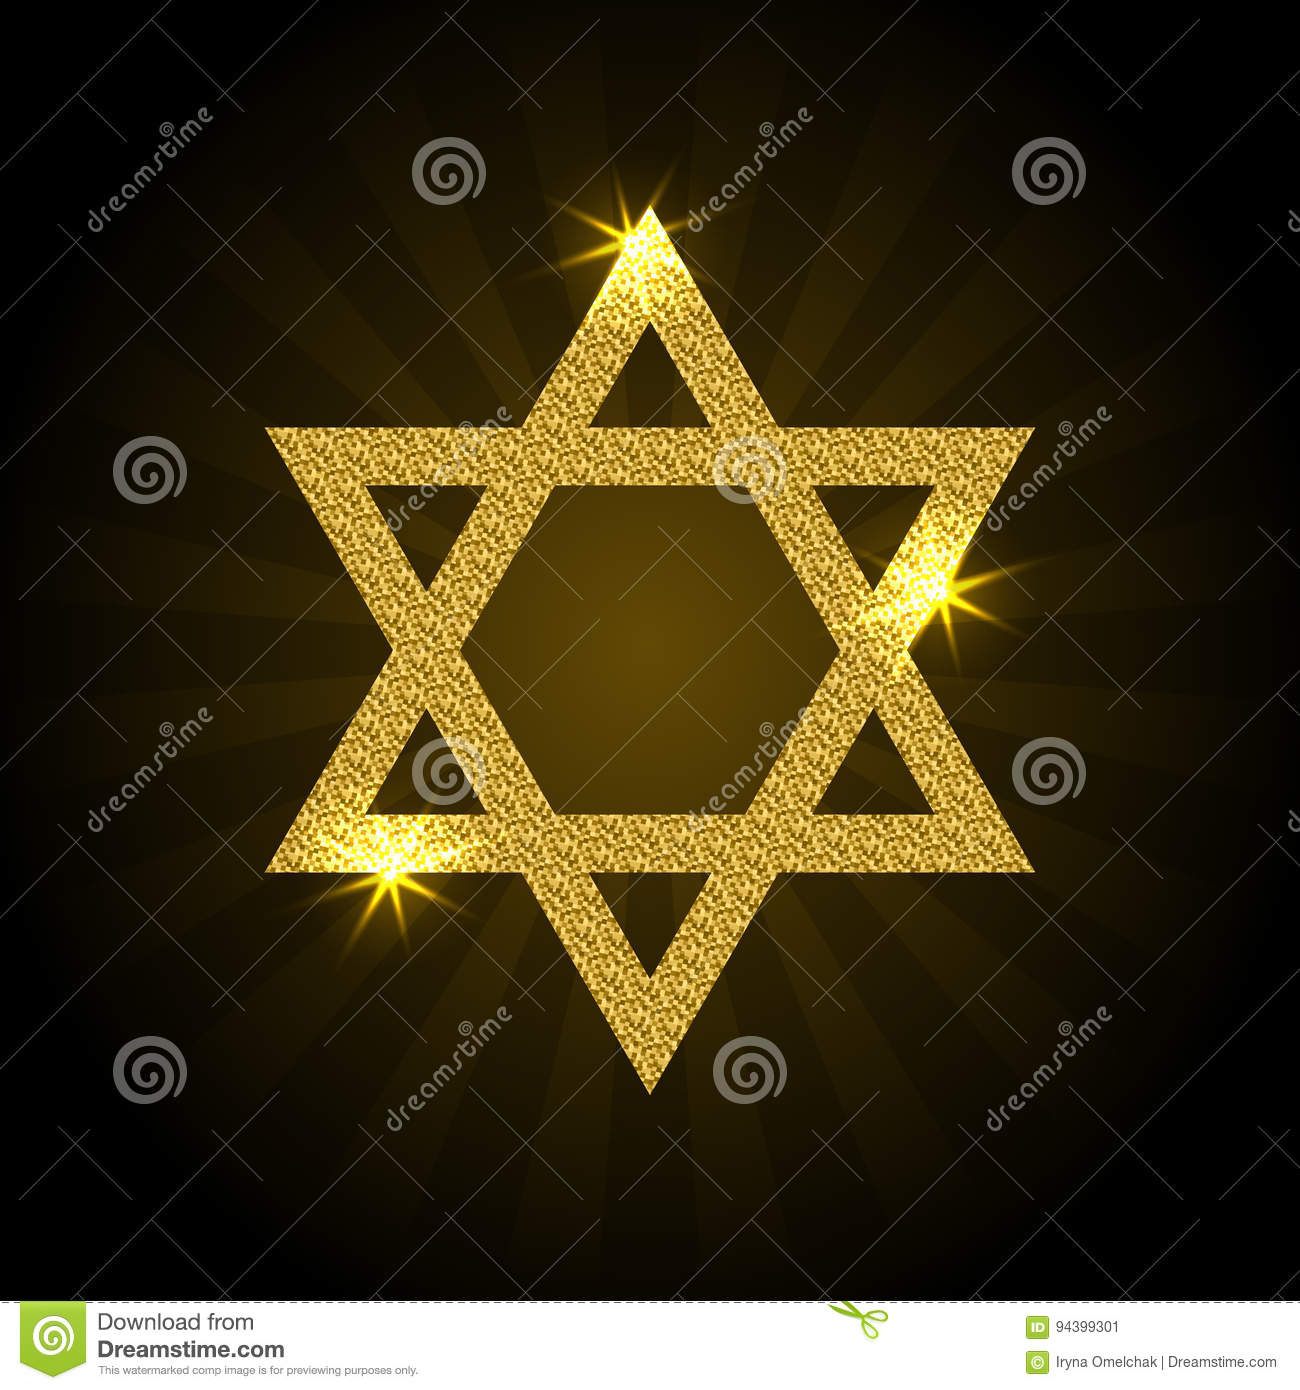 Vector illustration of golden Magen David with rays and sparkle.